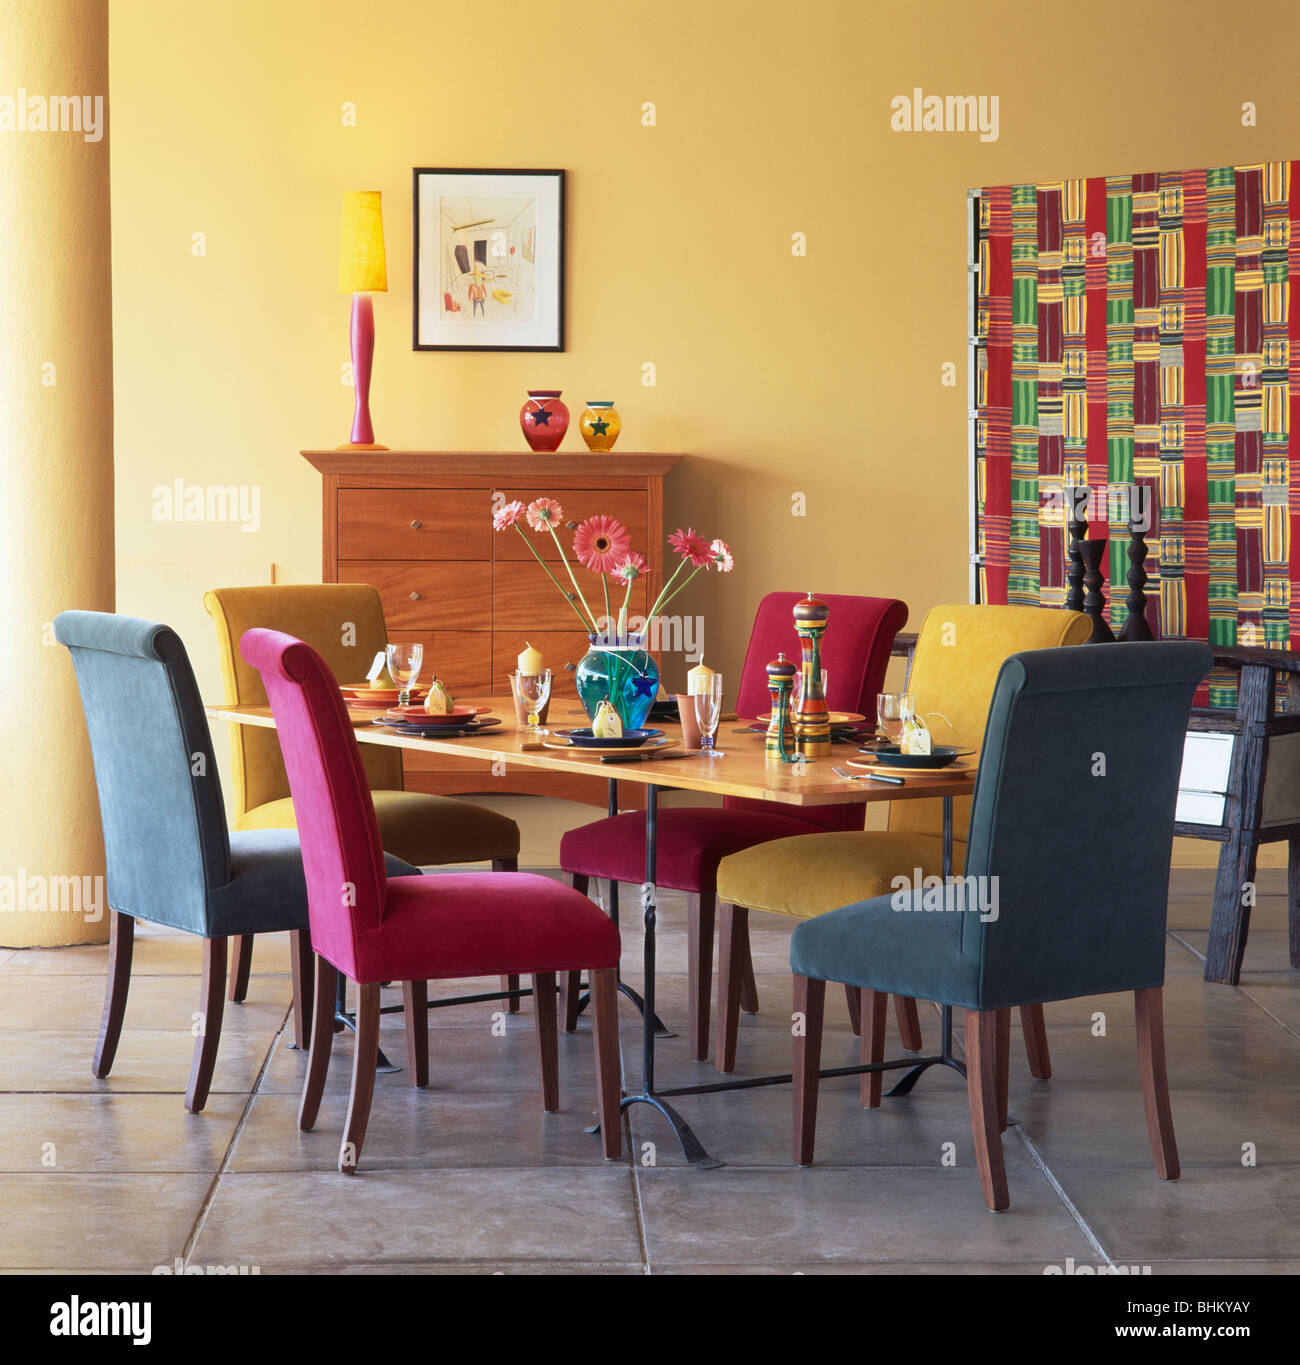 Pink Turquoise And Blue Velour Upholstered Dining Chairs At Table In Modern Yellow Room With Multi Colored Screen